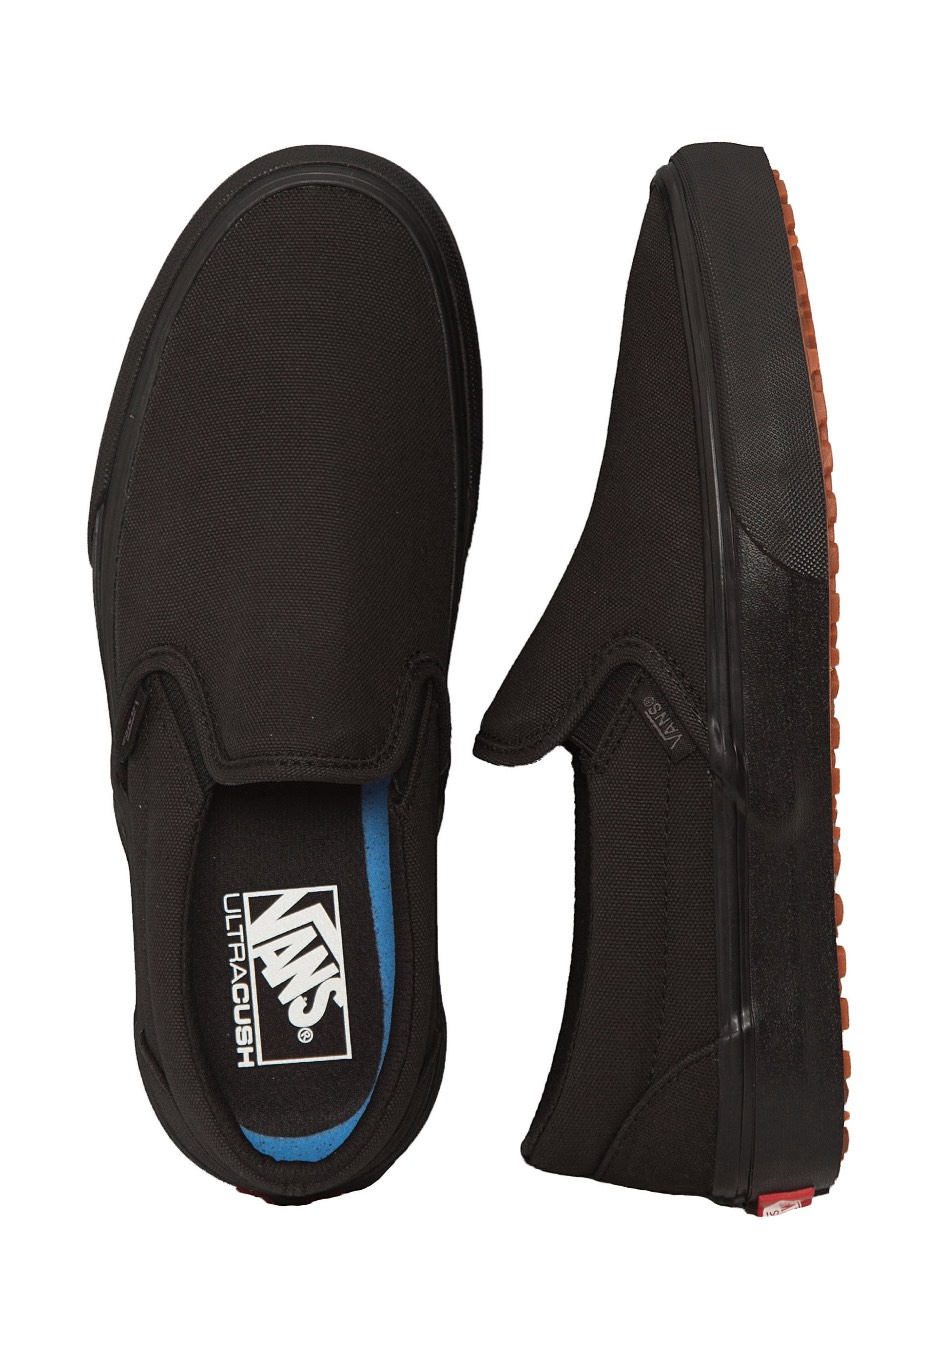 d7fb18fdb4abf1 Vans - Classic Slip-On UC Made For The Makers Black Black - Shoes -  Impericon.com UK